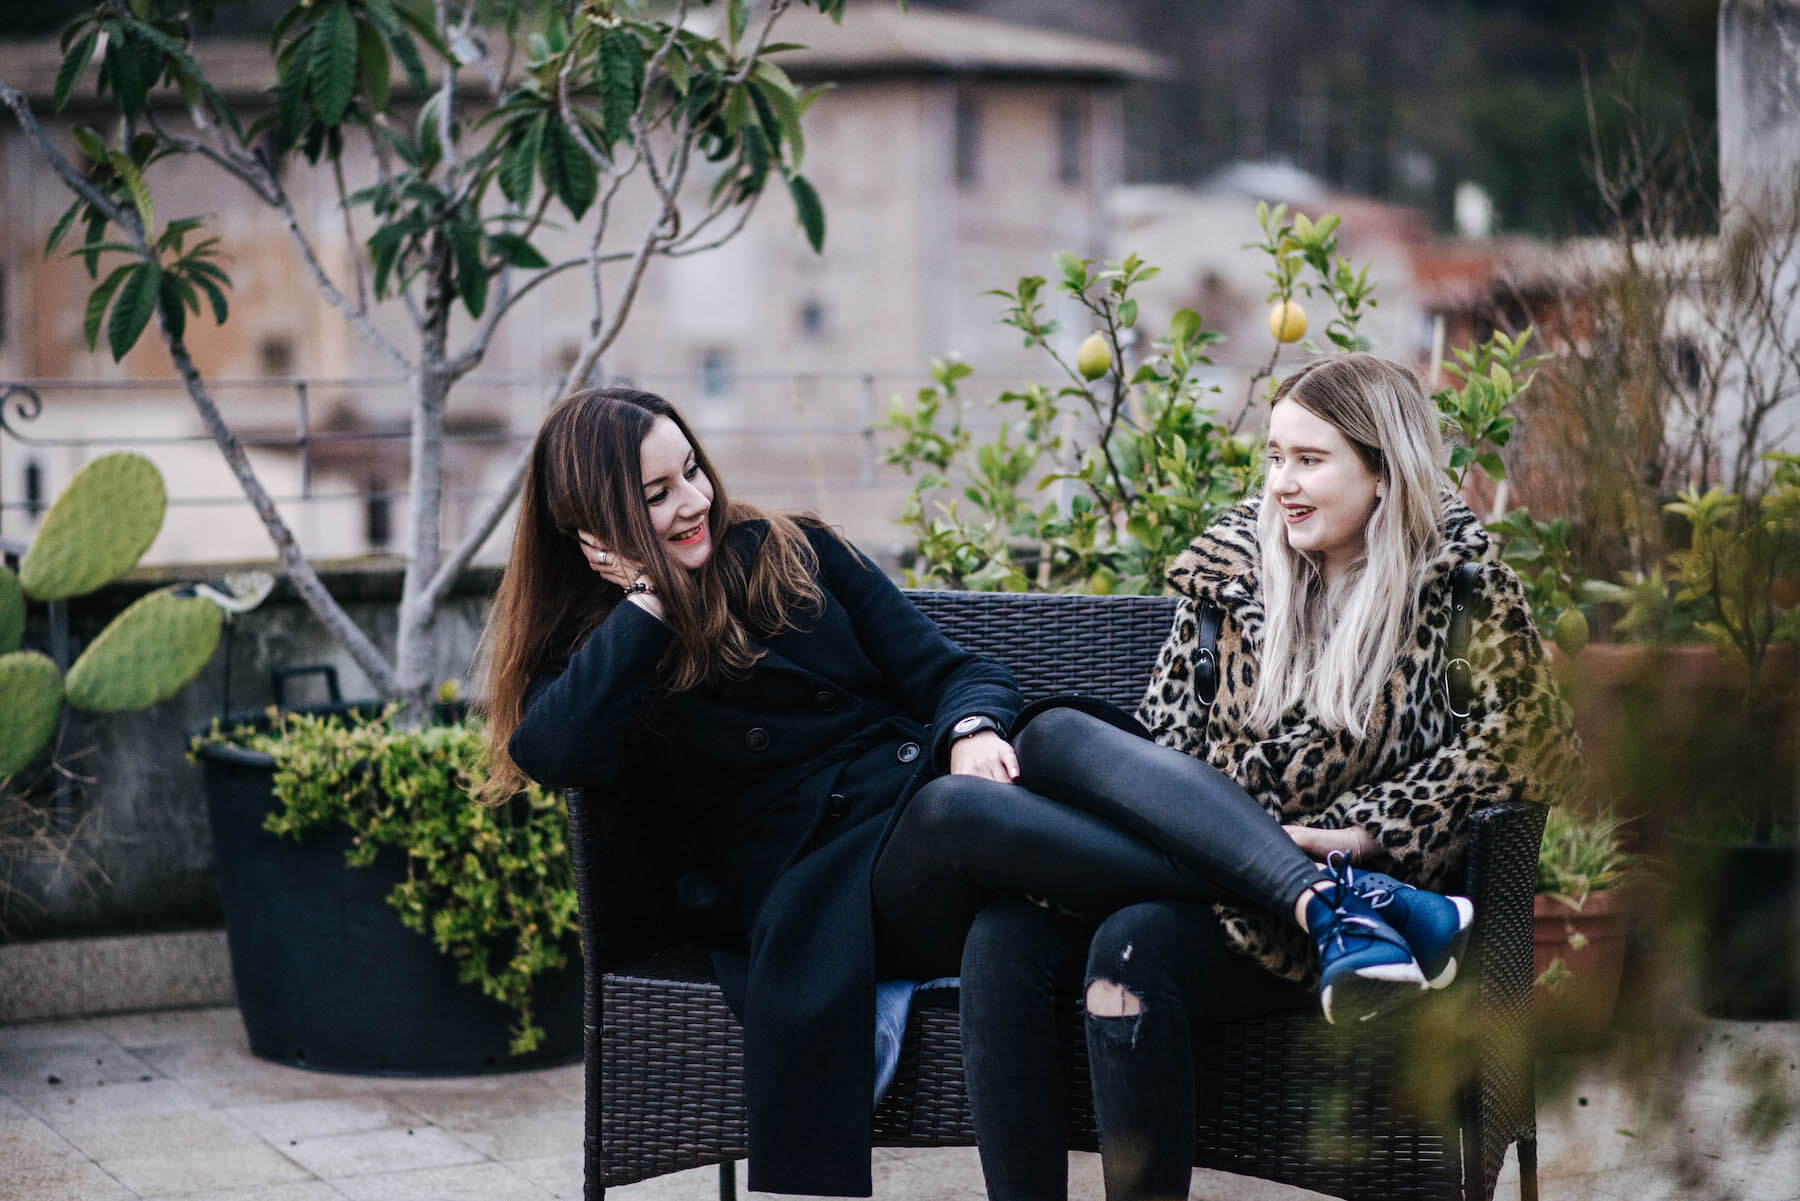 Sisters sitting on a bench together on a rooftop patio on a family trip in Rome, Italy